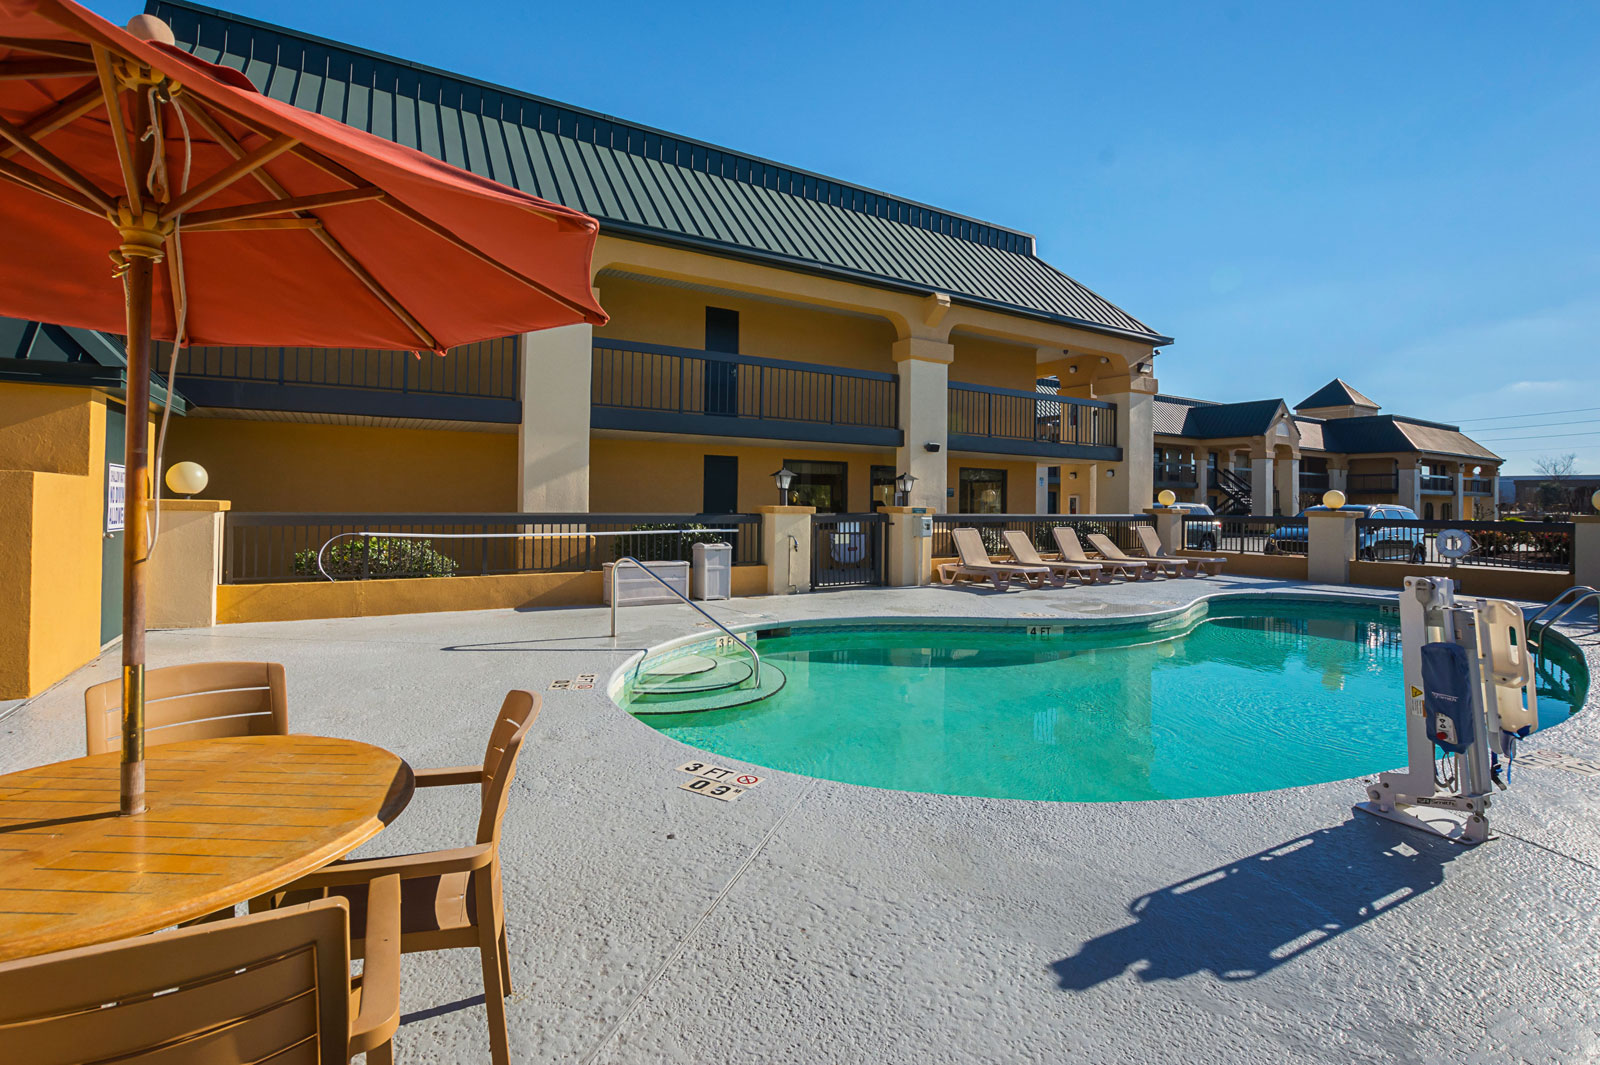 Quality Inn & Suites Florence Civic Center - South Carolina Pool Area